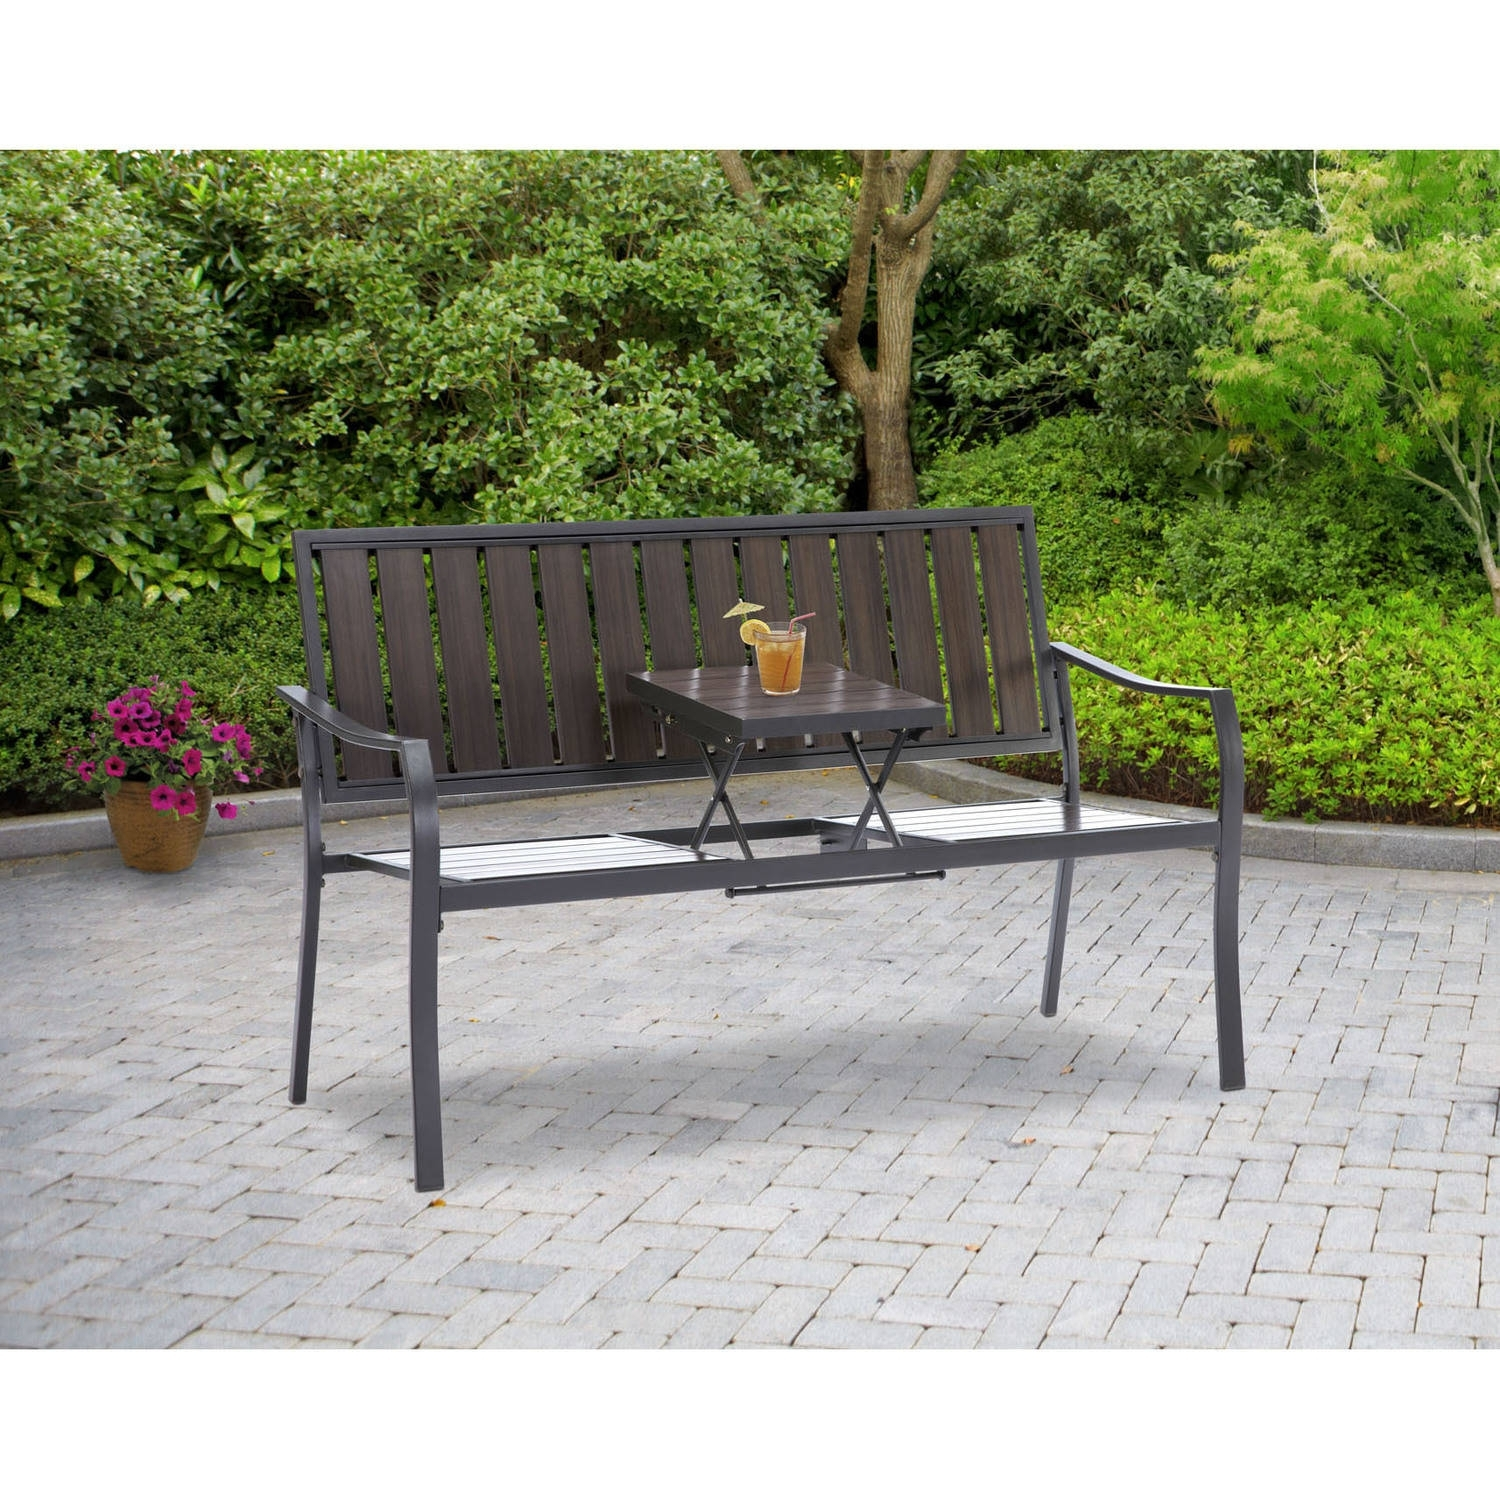 Image of: Metal Outdoor Benches Inside Expanded Metal Outdoor Furniture Ideas